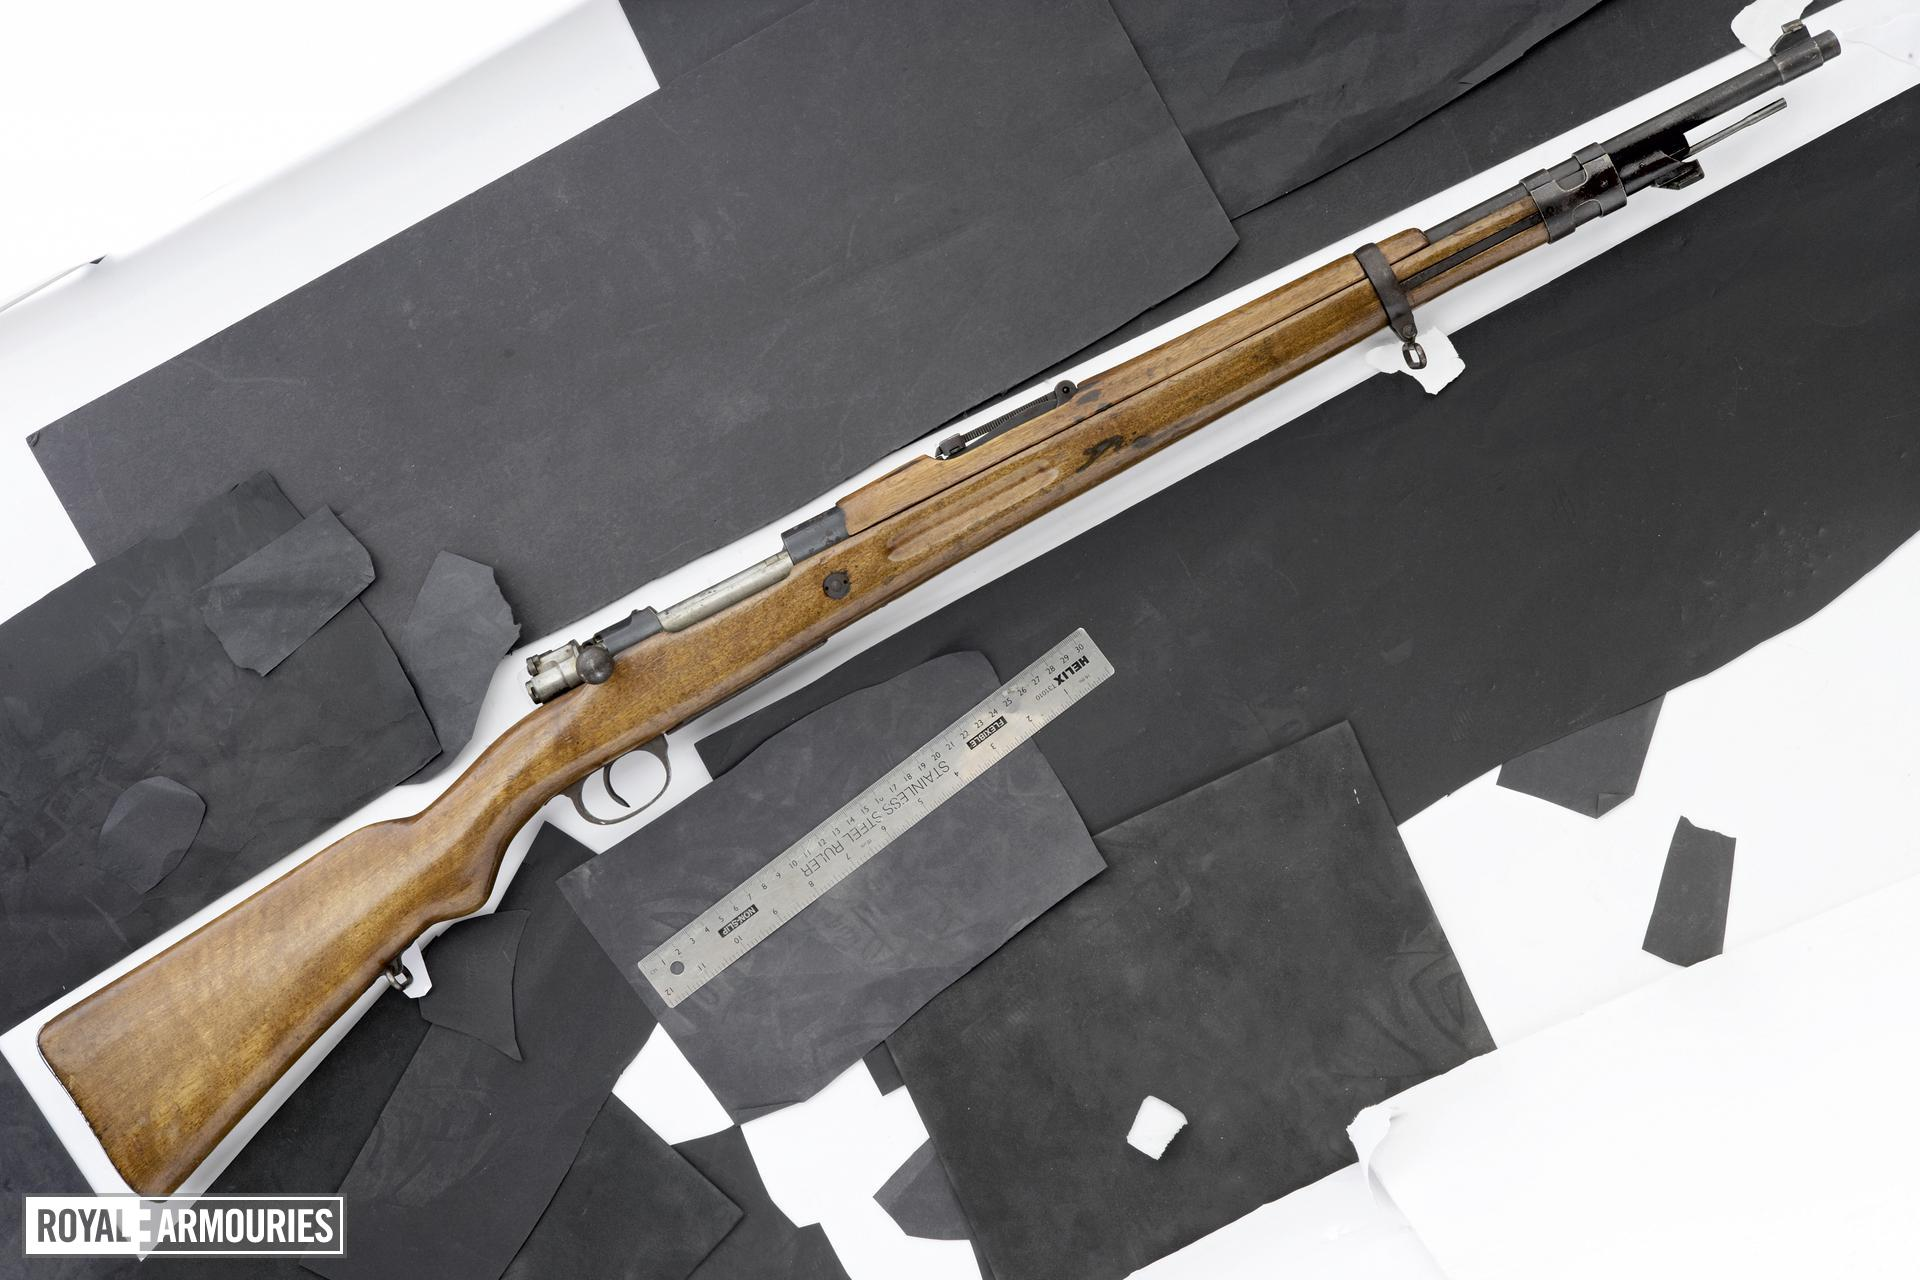 Centrefire bolt-action rifle - Mauser Model 1943